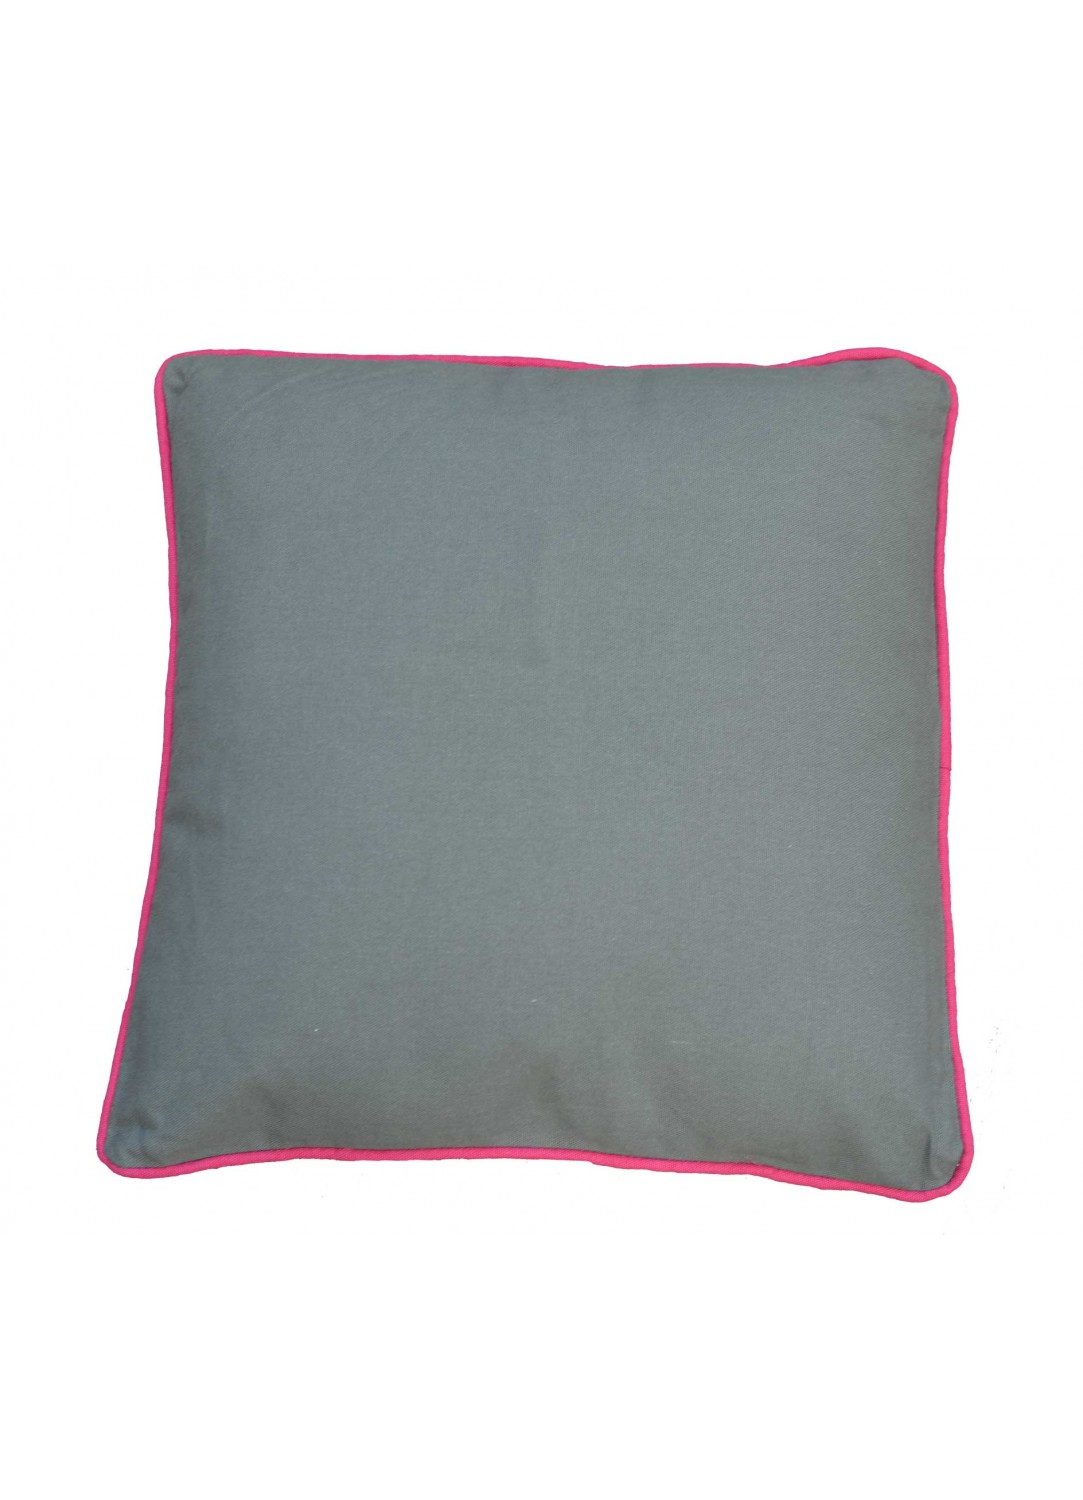 coussin uni avec pourtour color bleu fuschia homemaison vente en ligne coussins standards. Black Bedroom Furniture Sets. Home Design Ideas